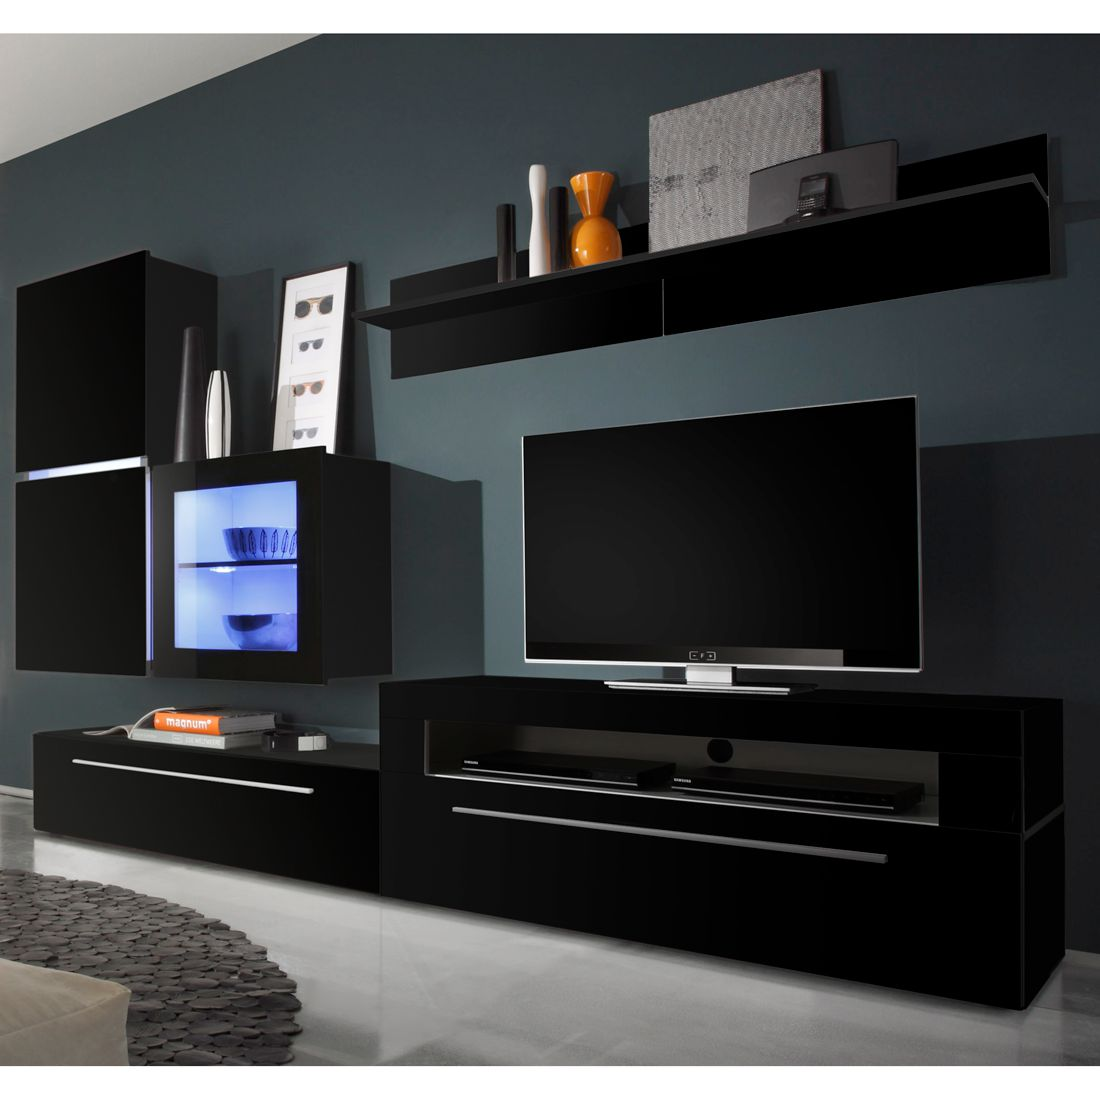 wohnwand schwarz hochglanz mit led alle ideen ber home. Black Bedroom Furniture Sets. Home Design Ideas